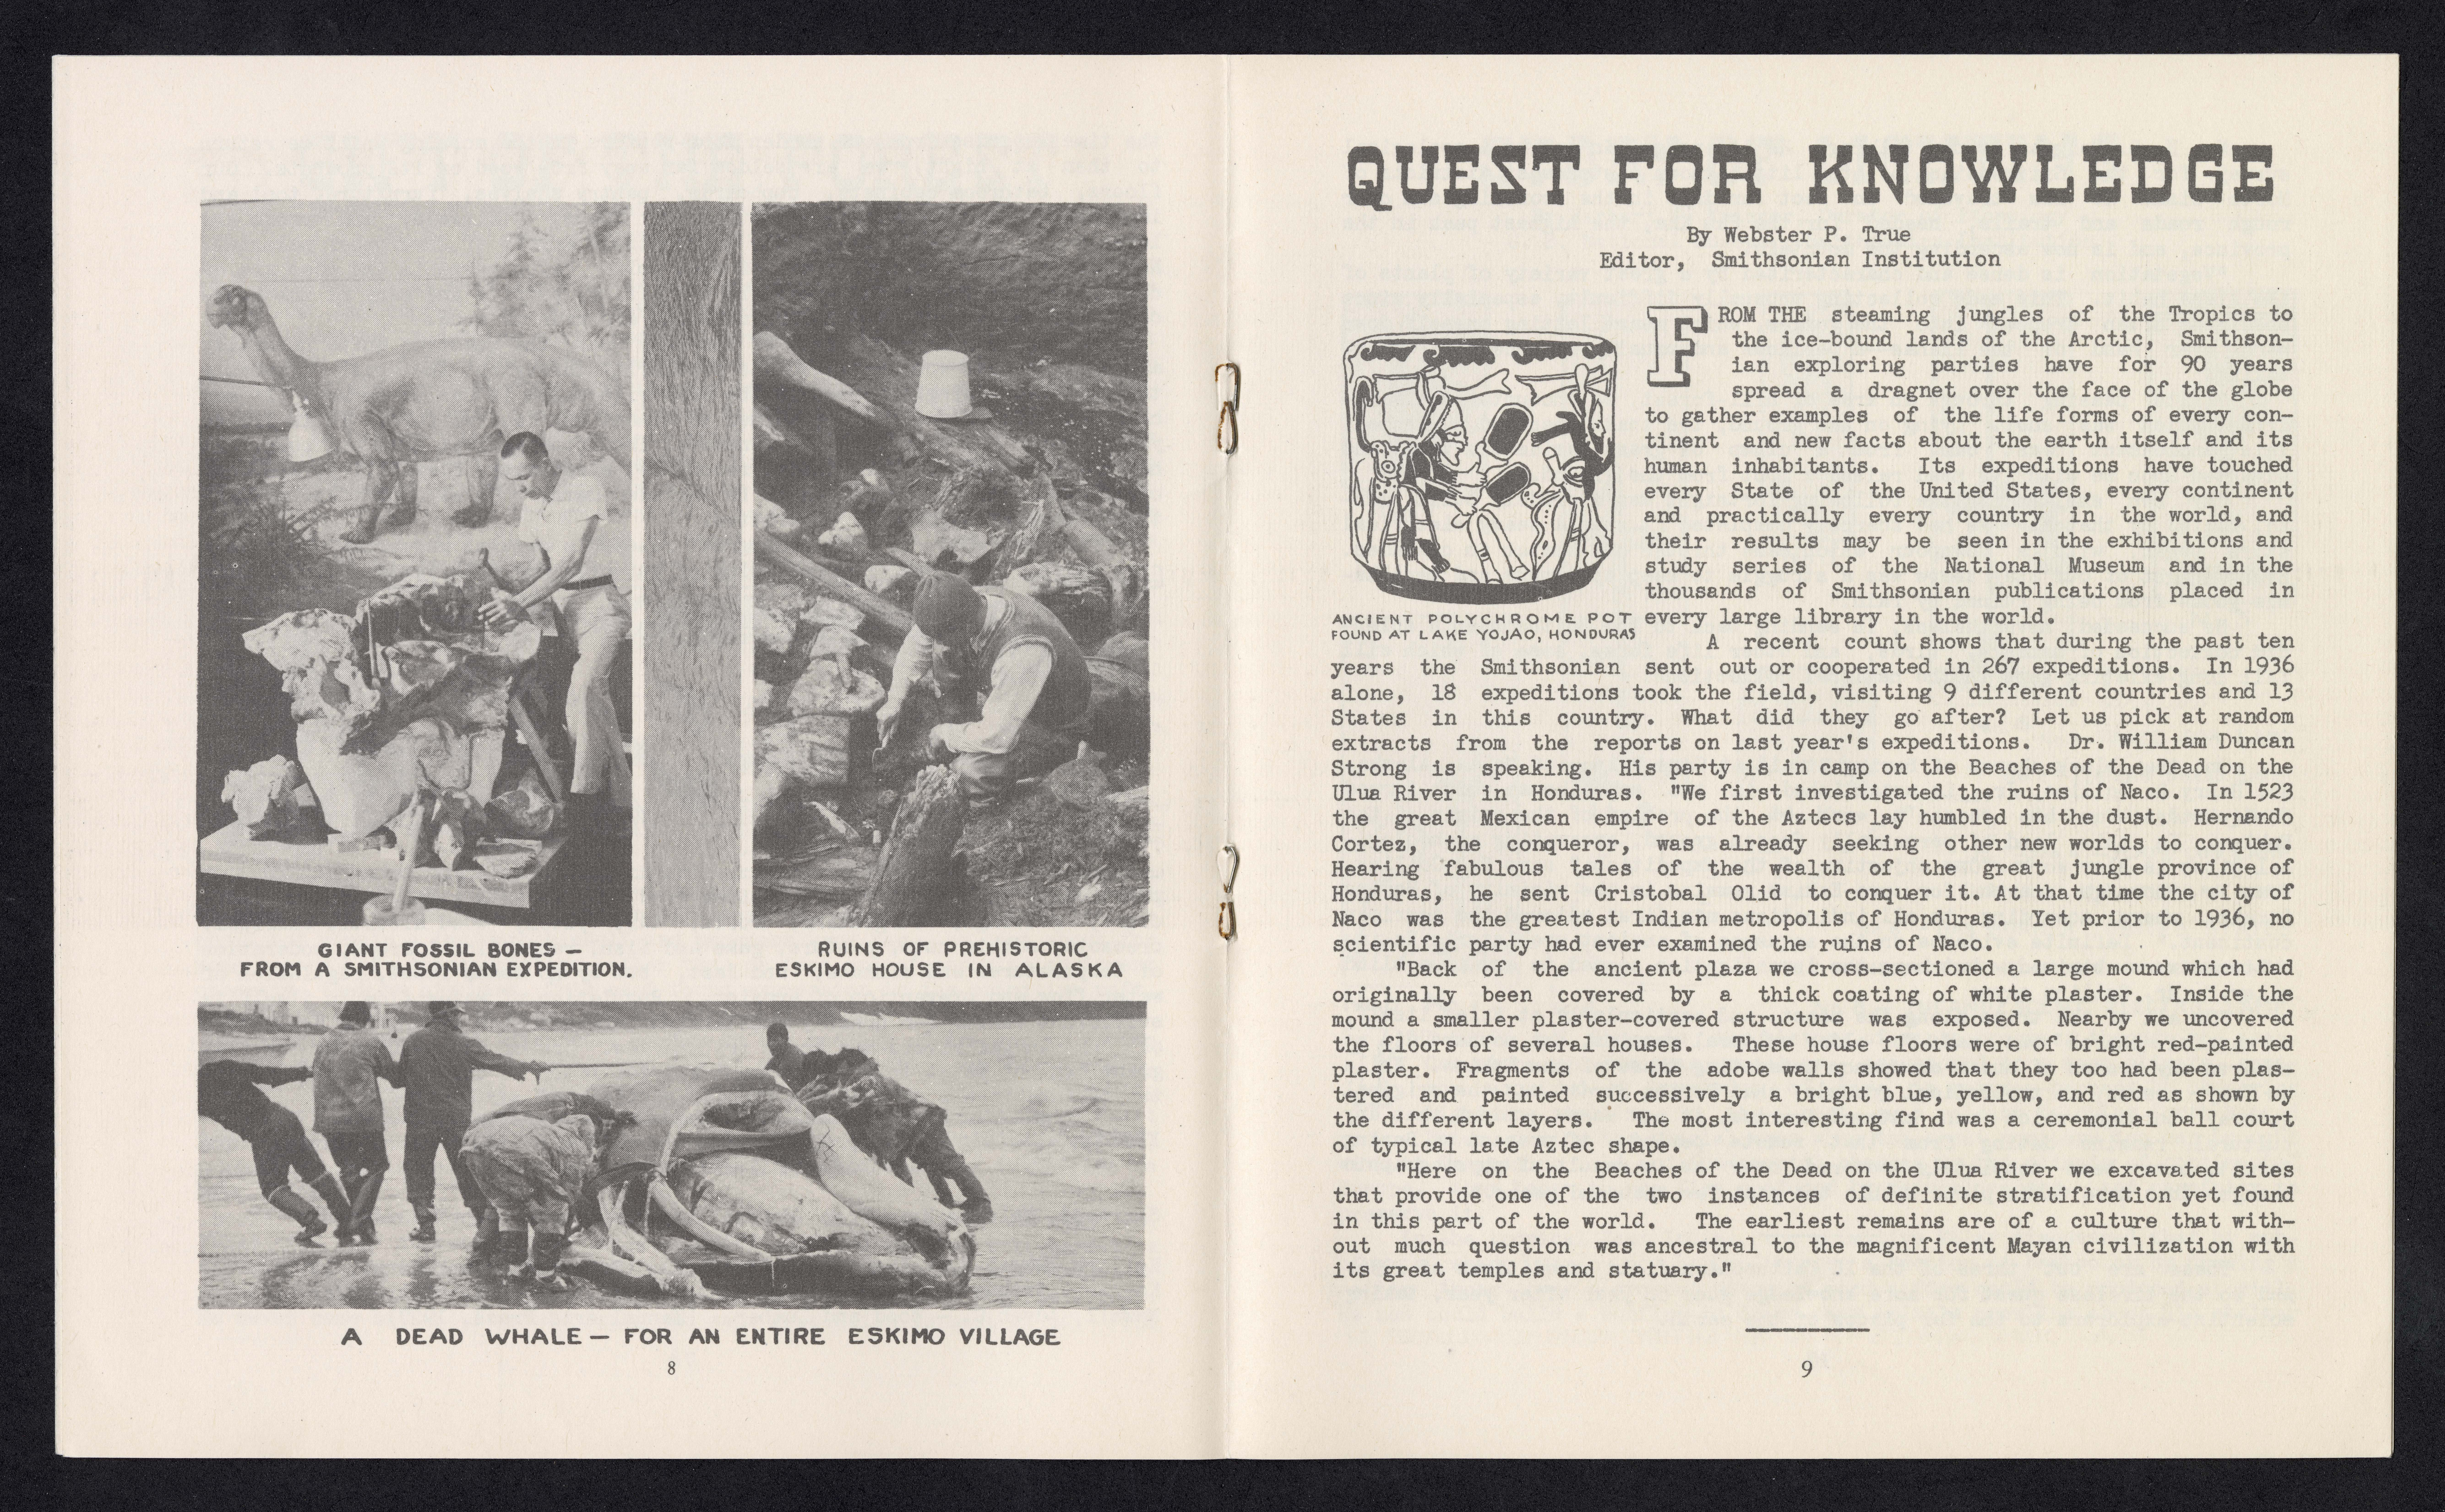 Page 8 includes photographs of a fossil on exhibit, people pulling a dead whale, and someone sifting